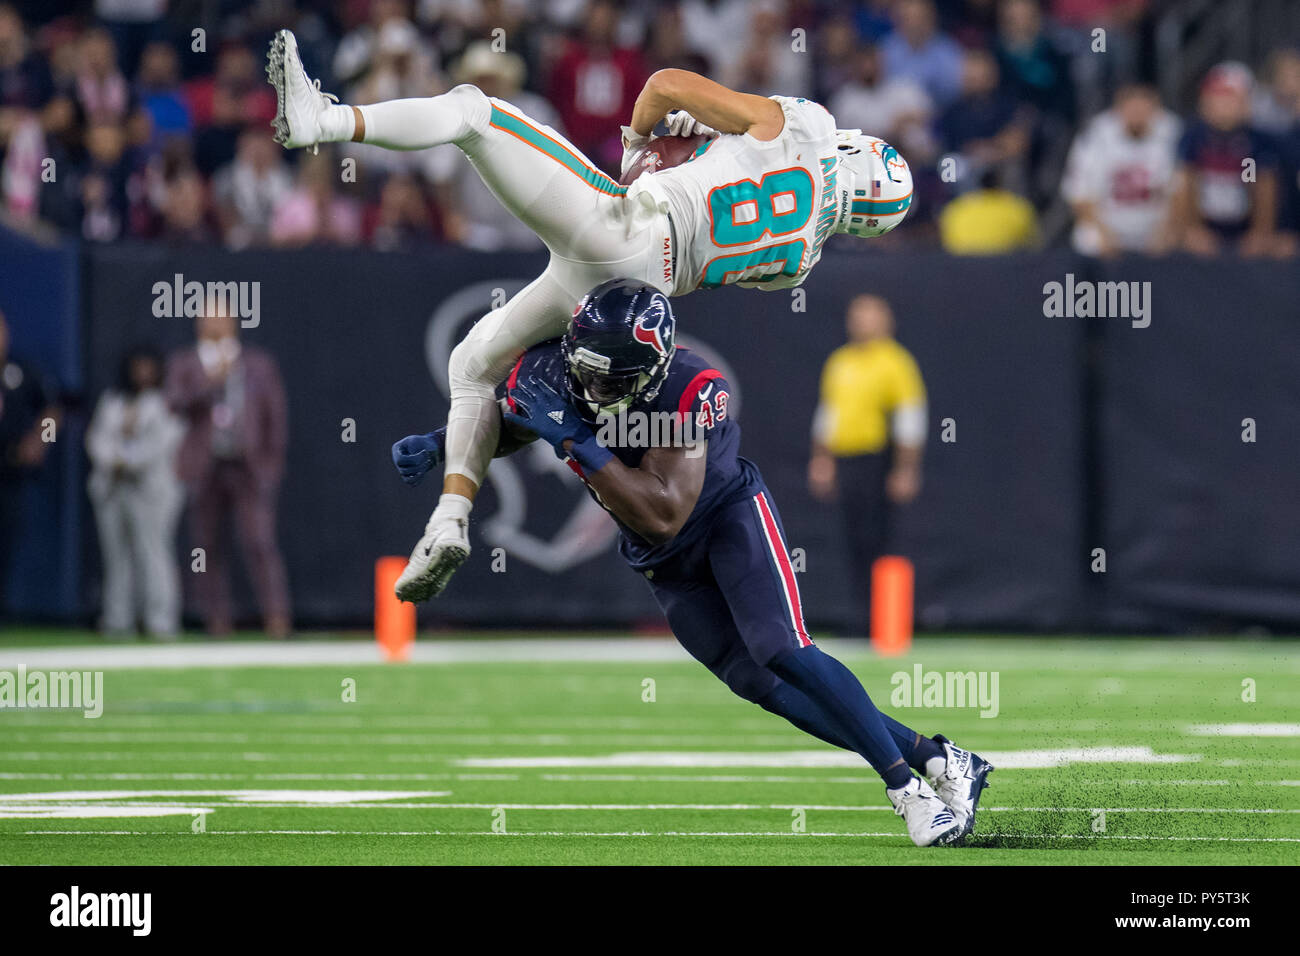 e506998d1 Houston, TX, USA. 25th Oct, 2018. Miami Dolphins wide receiver Danny ...